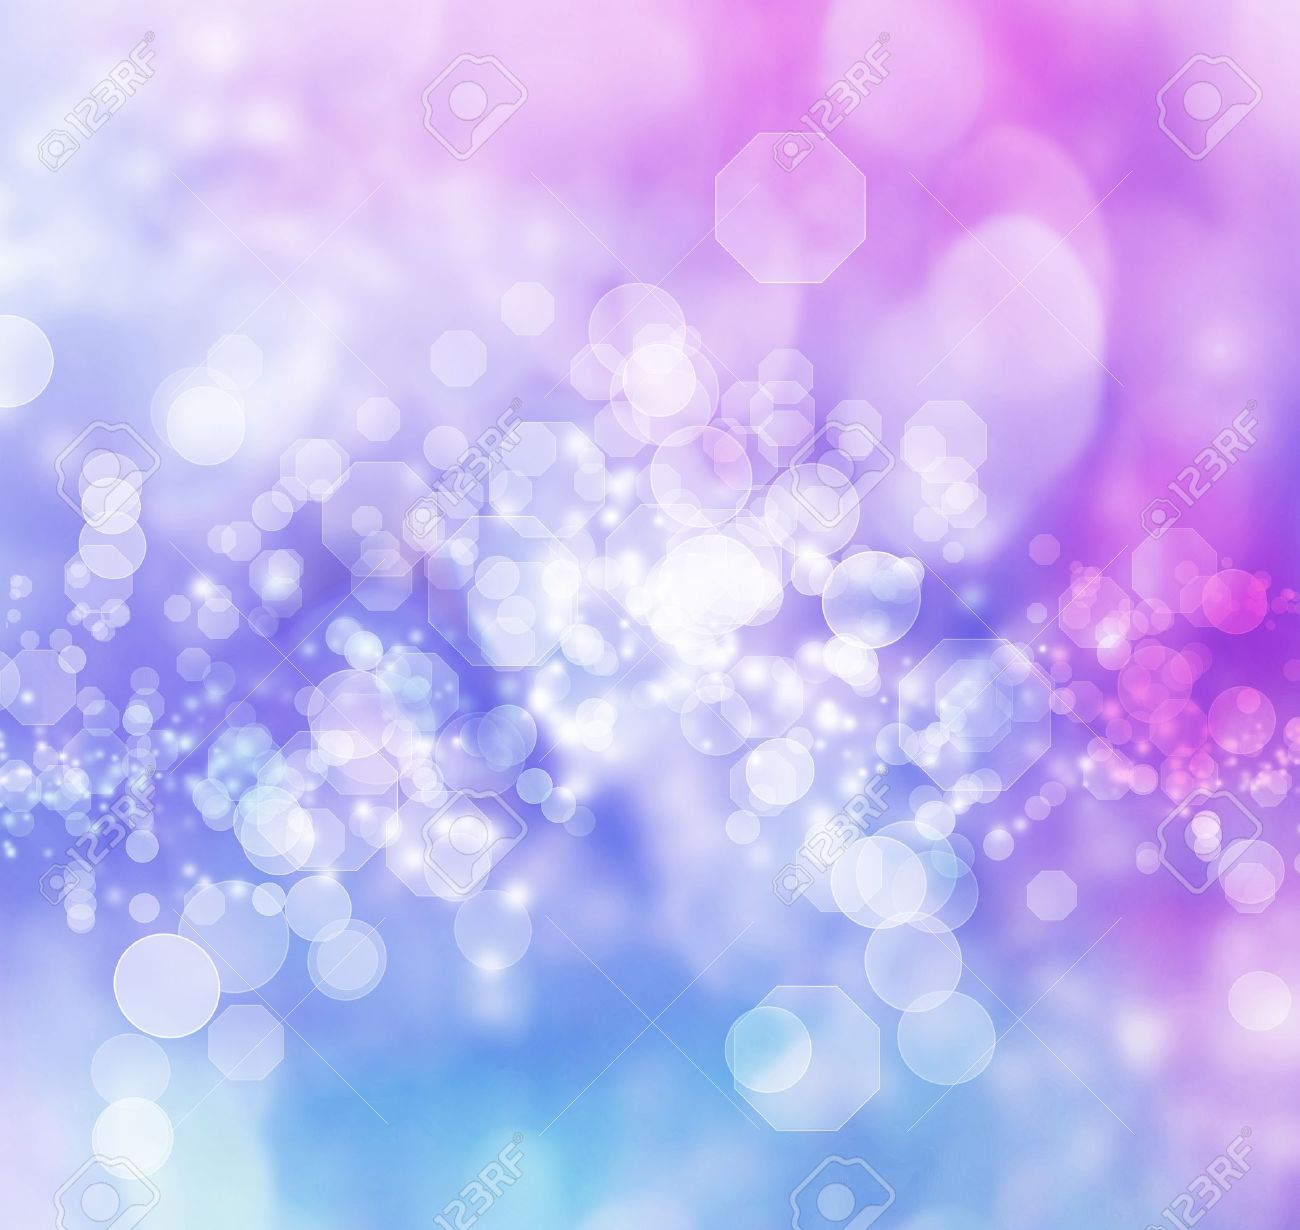 Abstract Light Purple Backgrounds